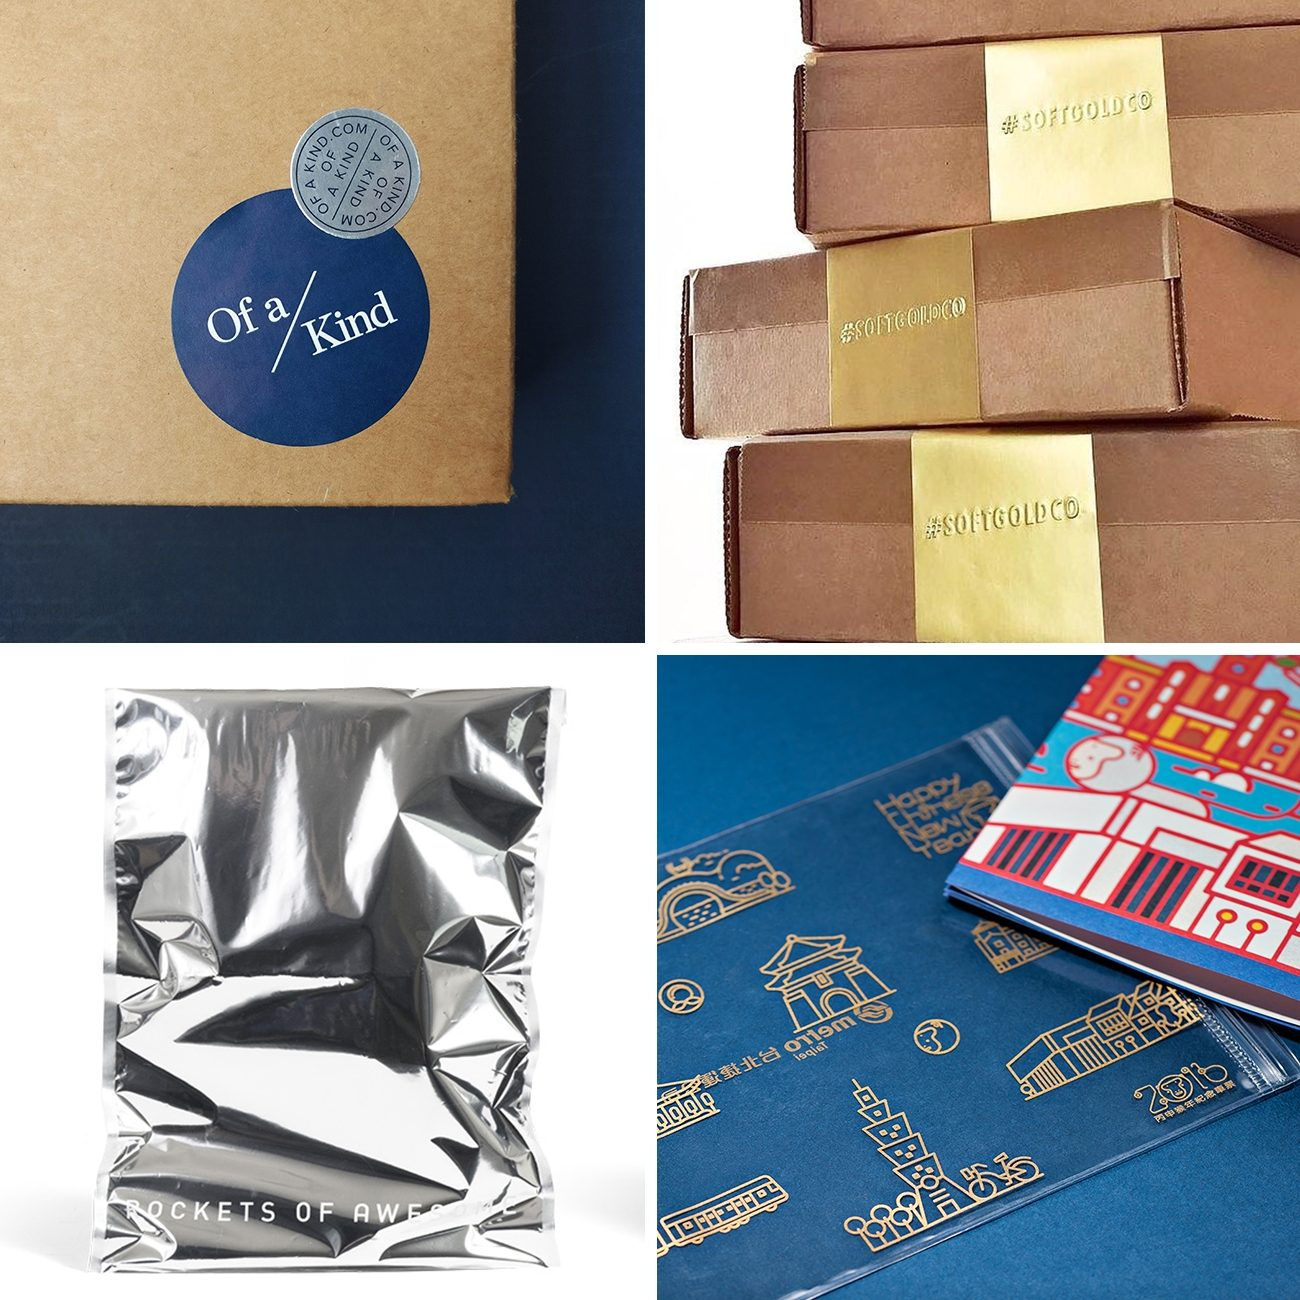 Photos via: FourPlus and Ivaylo Nedkov, Lumi, Soft Gold Co, Lumi, Midnight Design and Kuocheng Liao 90 Ideas to Spruce Up Your Holiday Packaging Design